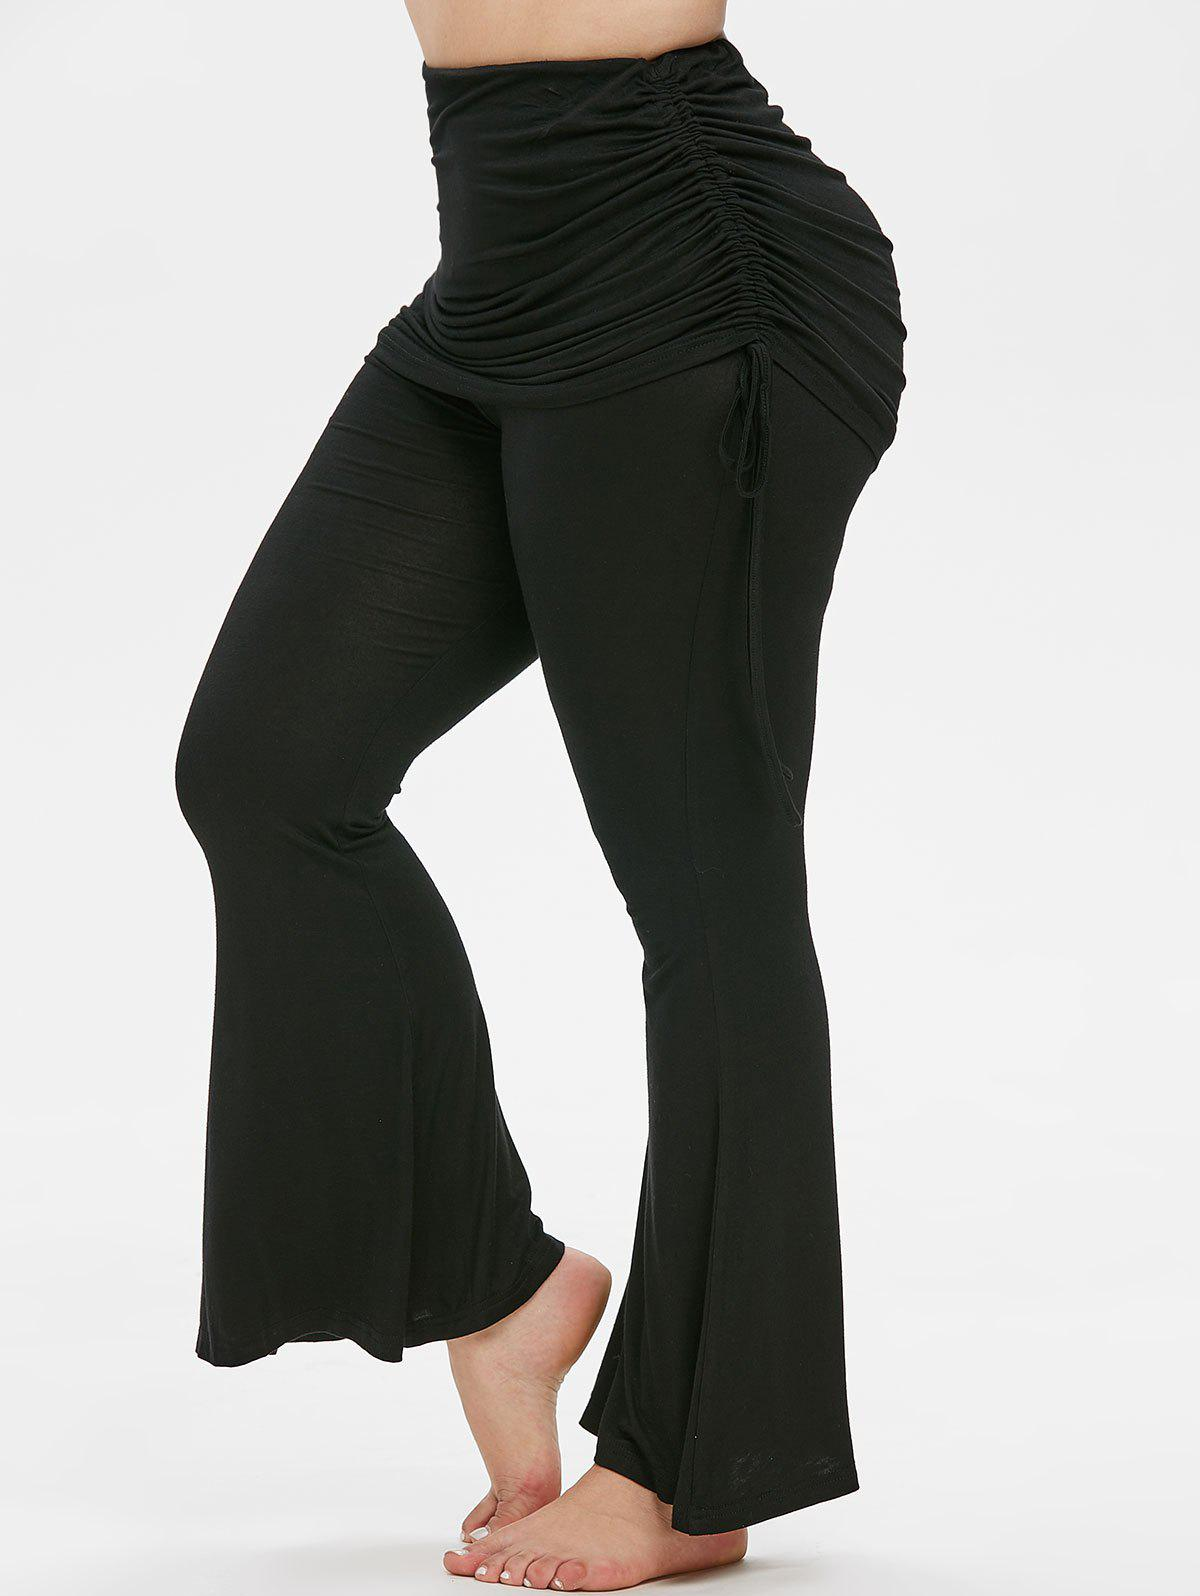 Plus Size Cinched Overlay Bell Bottom Pants - BLACK 5X